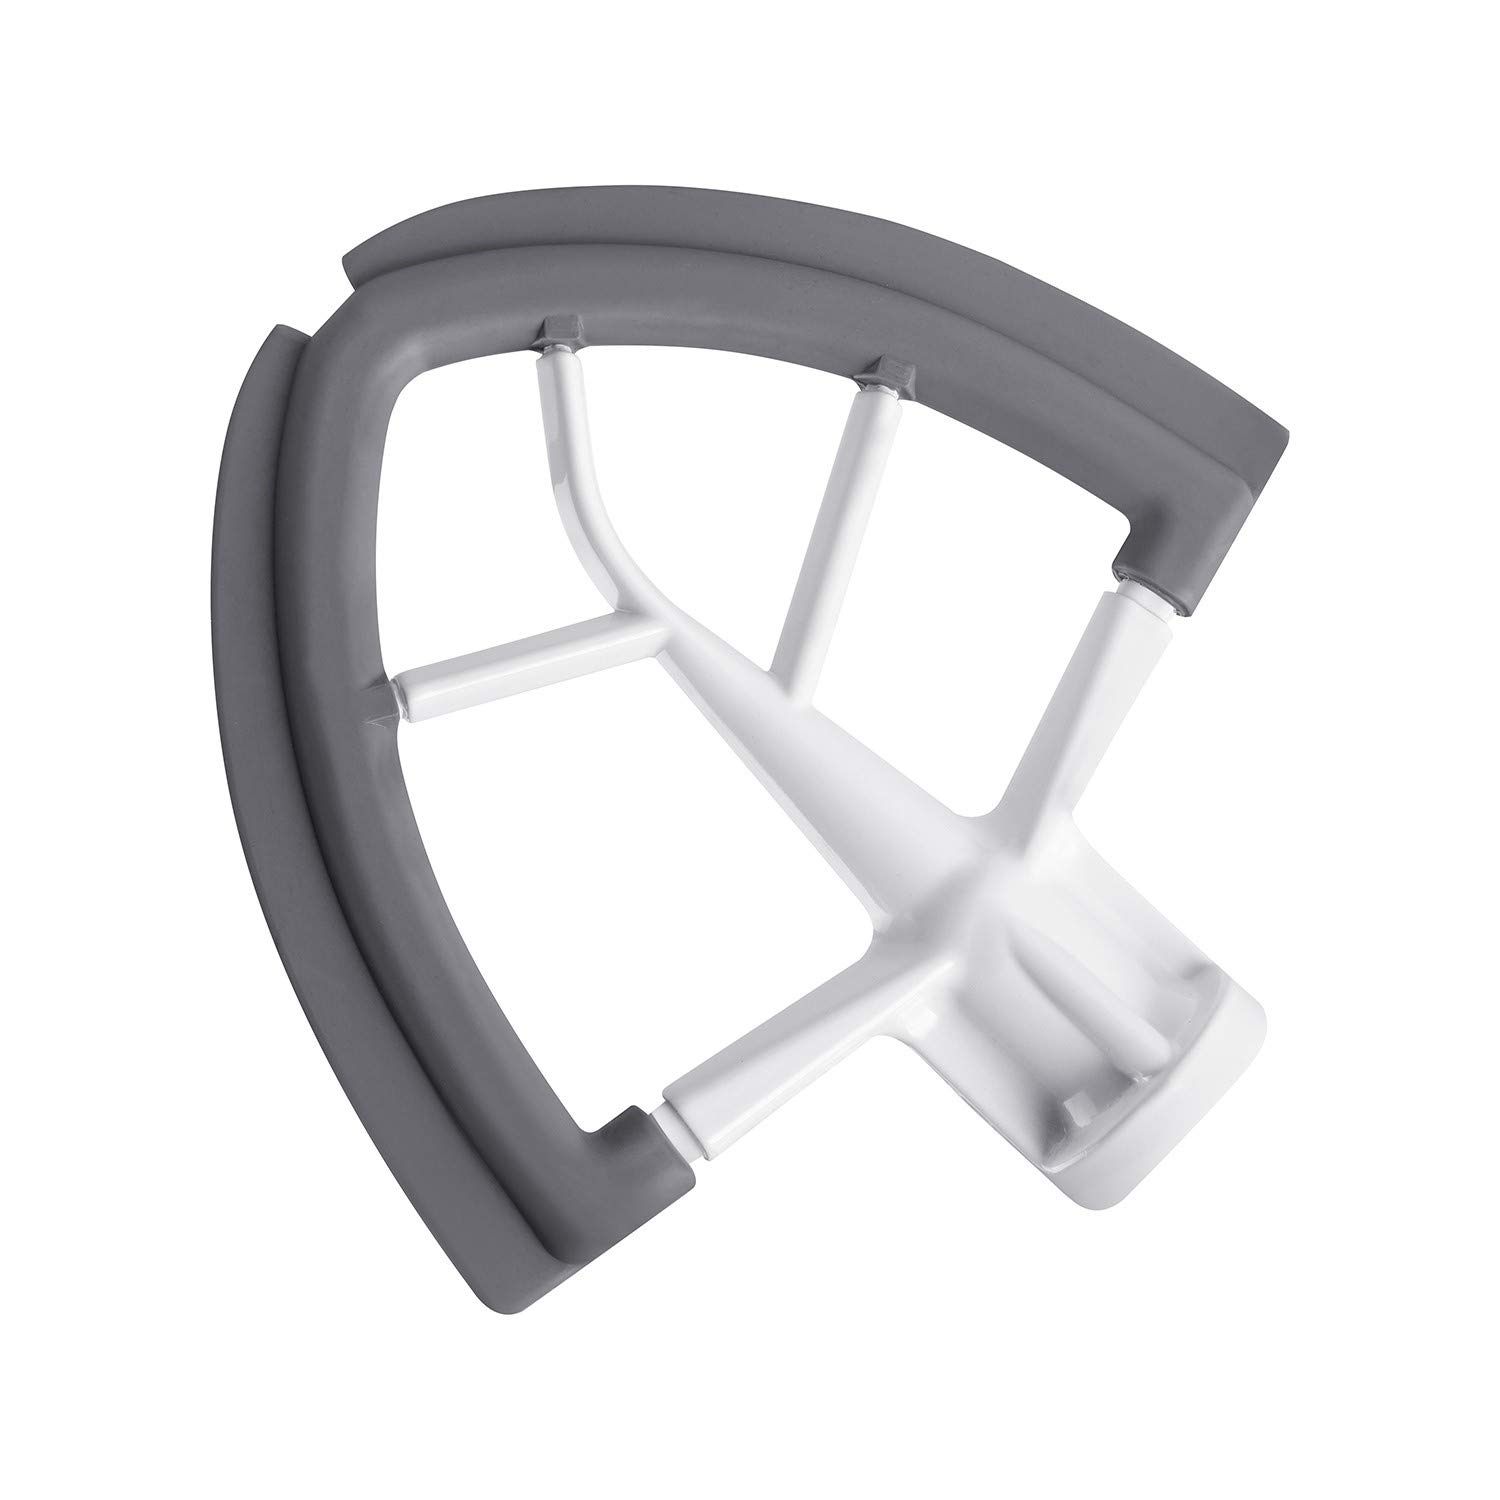 Flex Edge Beater for KitchenAid Tilt-Head Stand Mixer, 4.5-5 Quart Flat Beater Blade with Flexible Silicone Edges Bowl Scraper